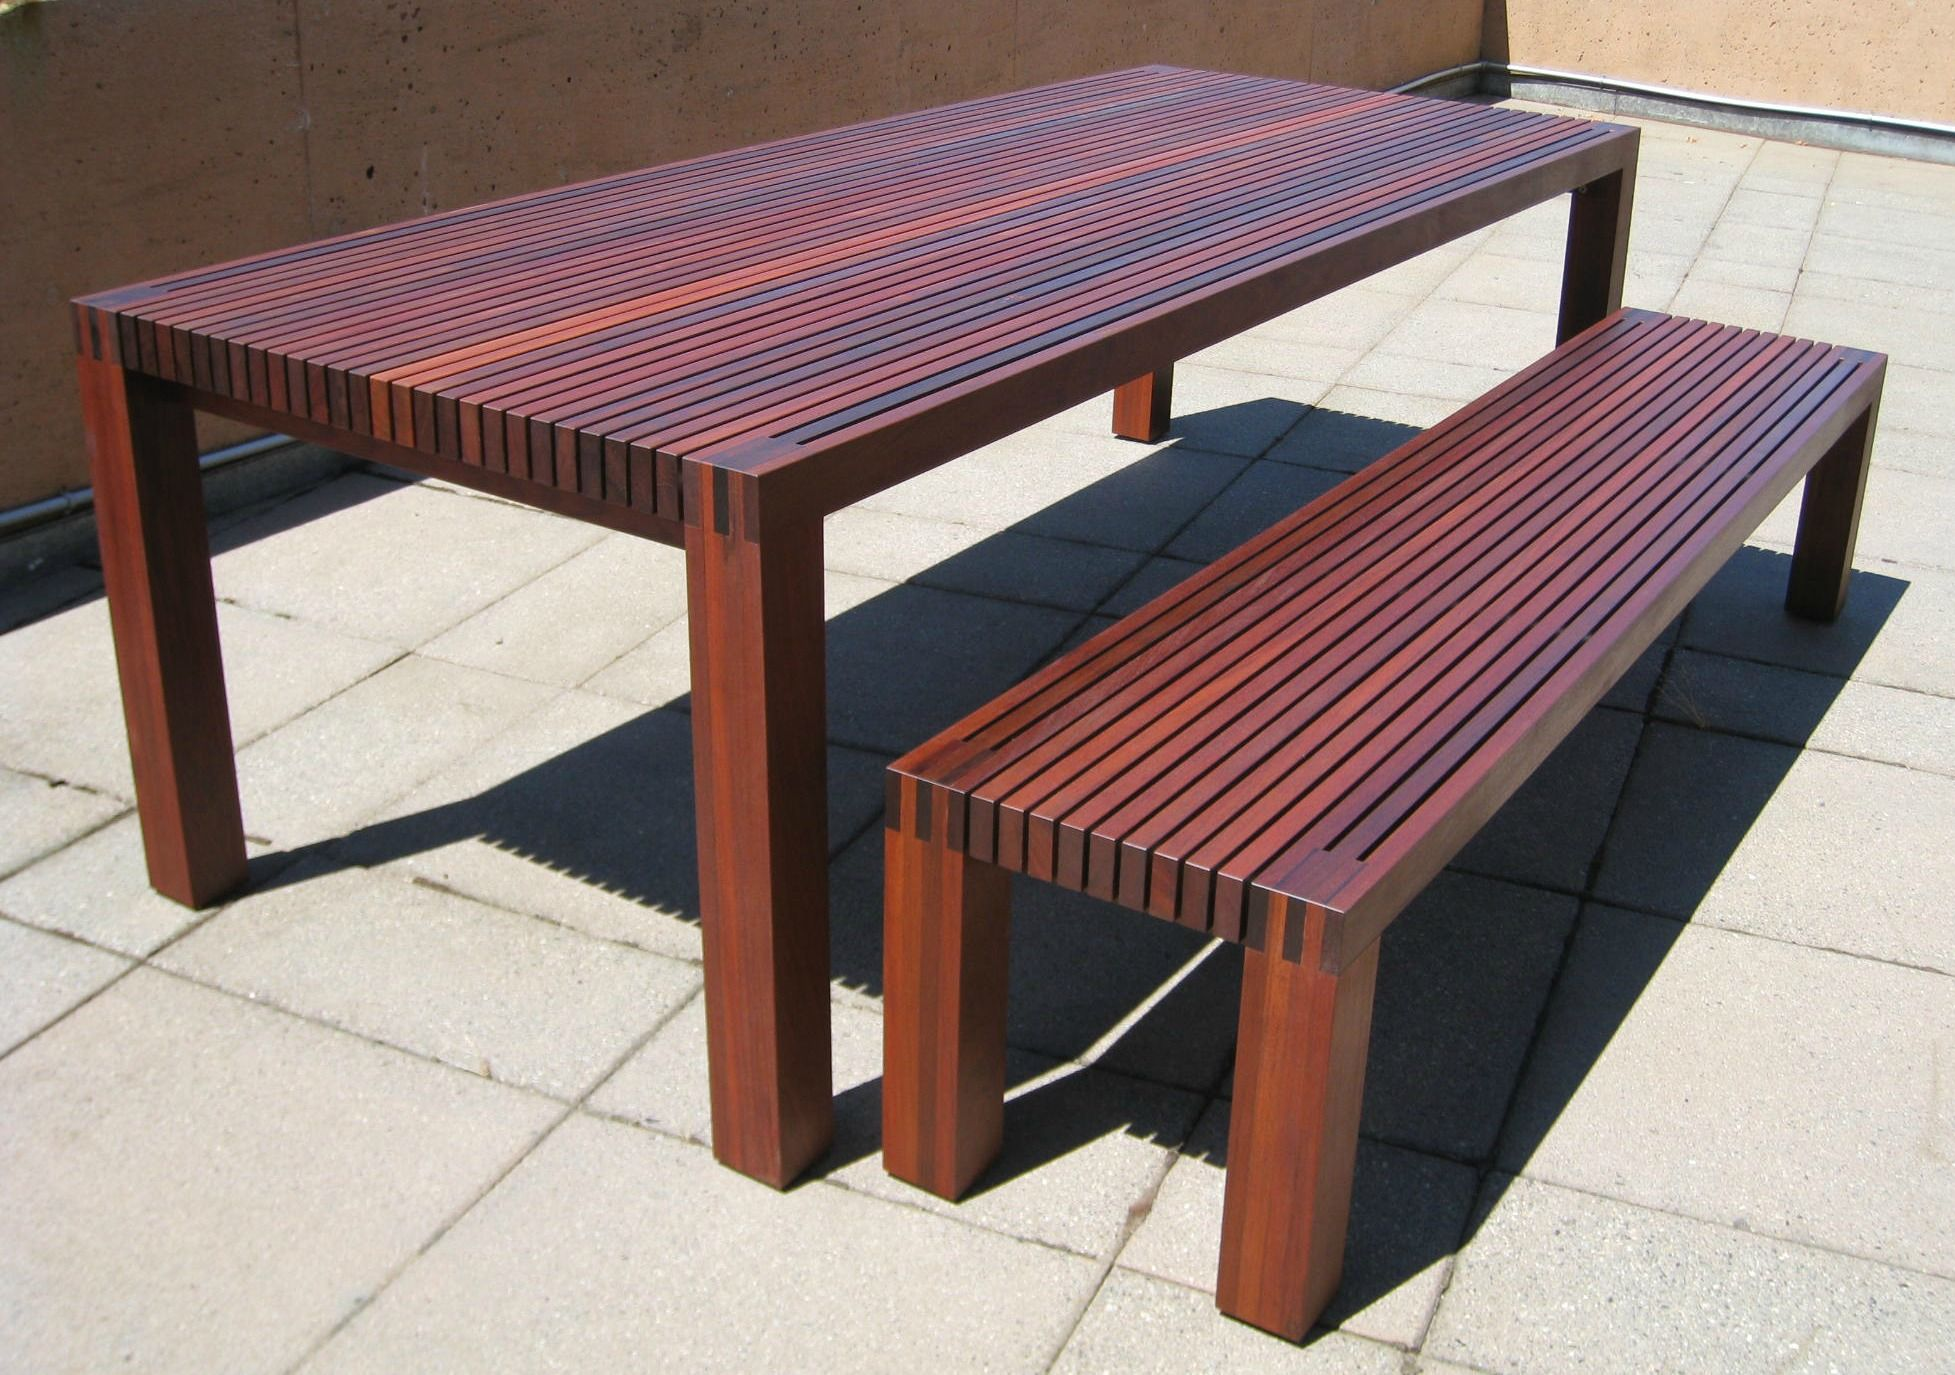 Japanese Dining Table For Sale 6 Slatted Outdoor Table 43 Bench Ipe Backyard